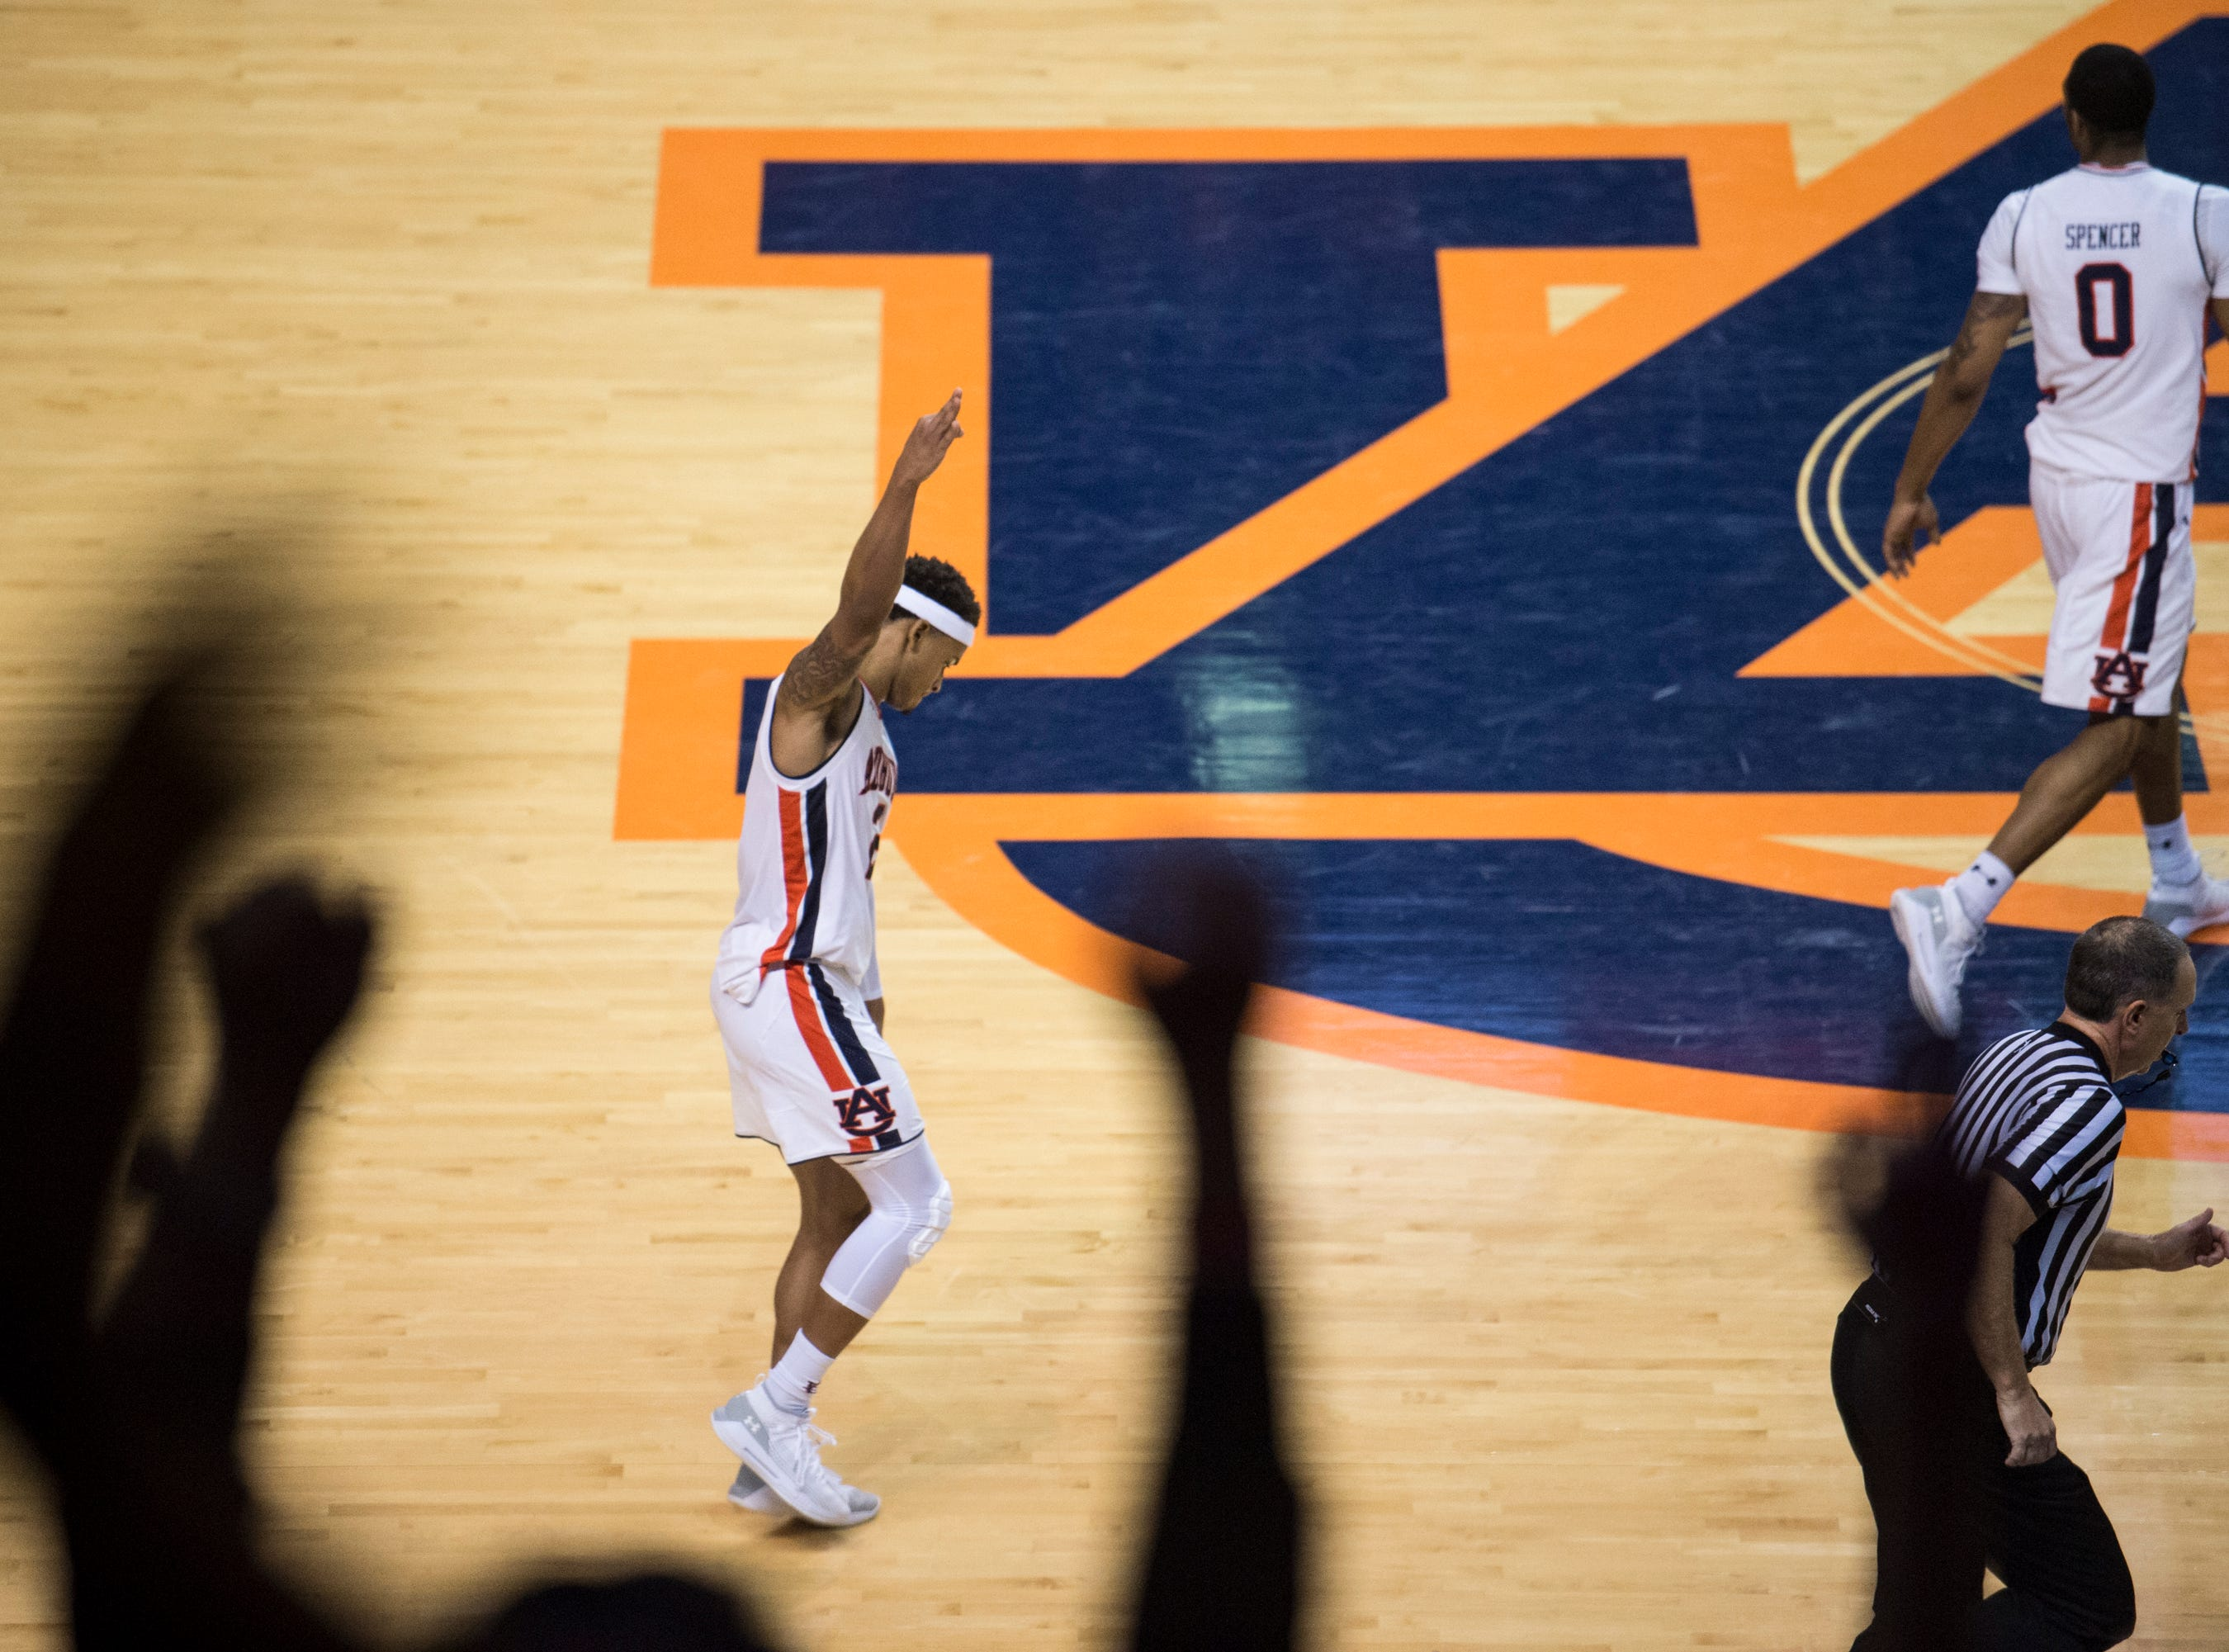 Auburn guard Bryce Brown (2) celebrates a late game three pointer at Auburn Arena in Auburn, Ala., on Saturday, Jan. 19, 2019. Kentucky defeats Auburn 82-80.